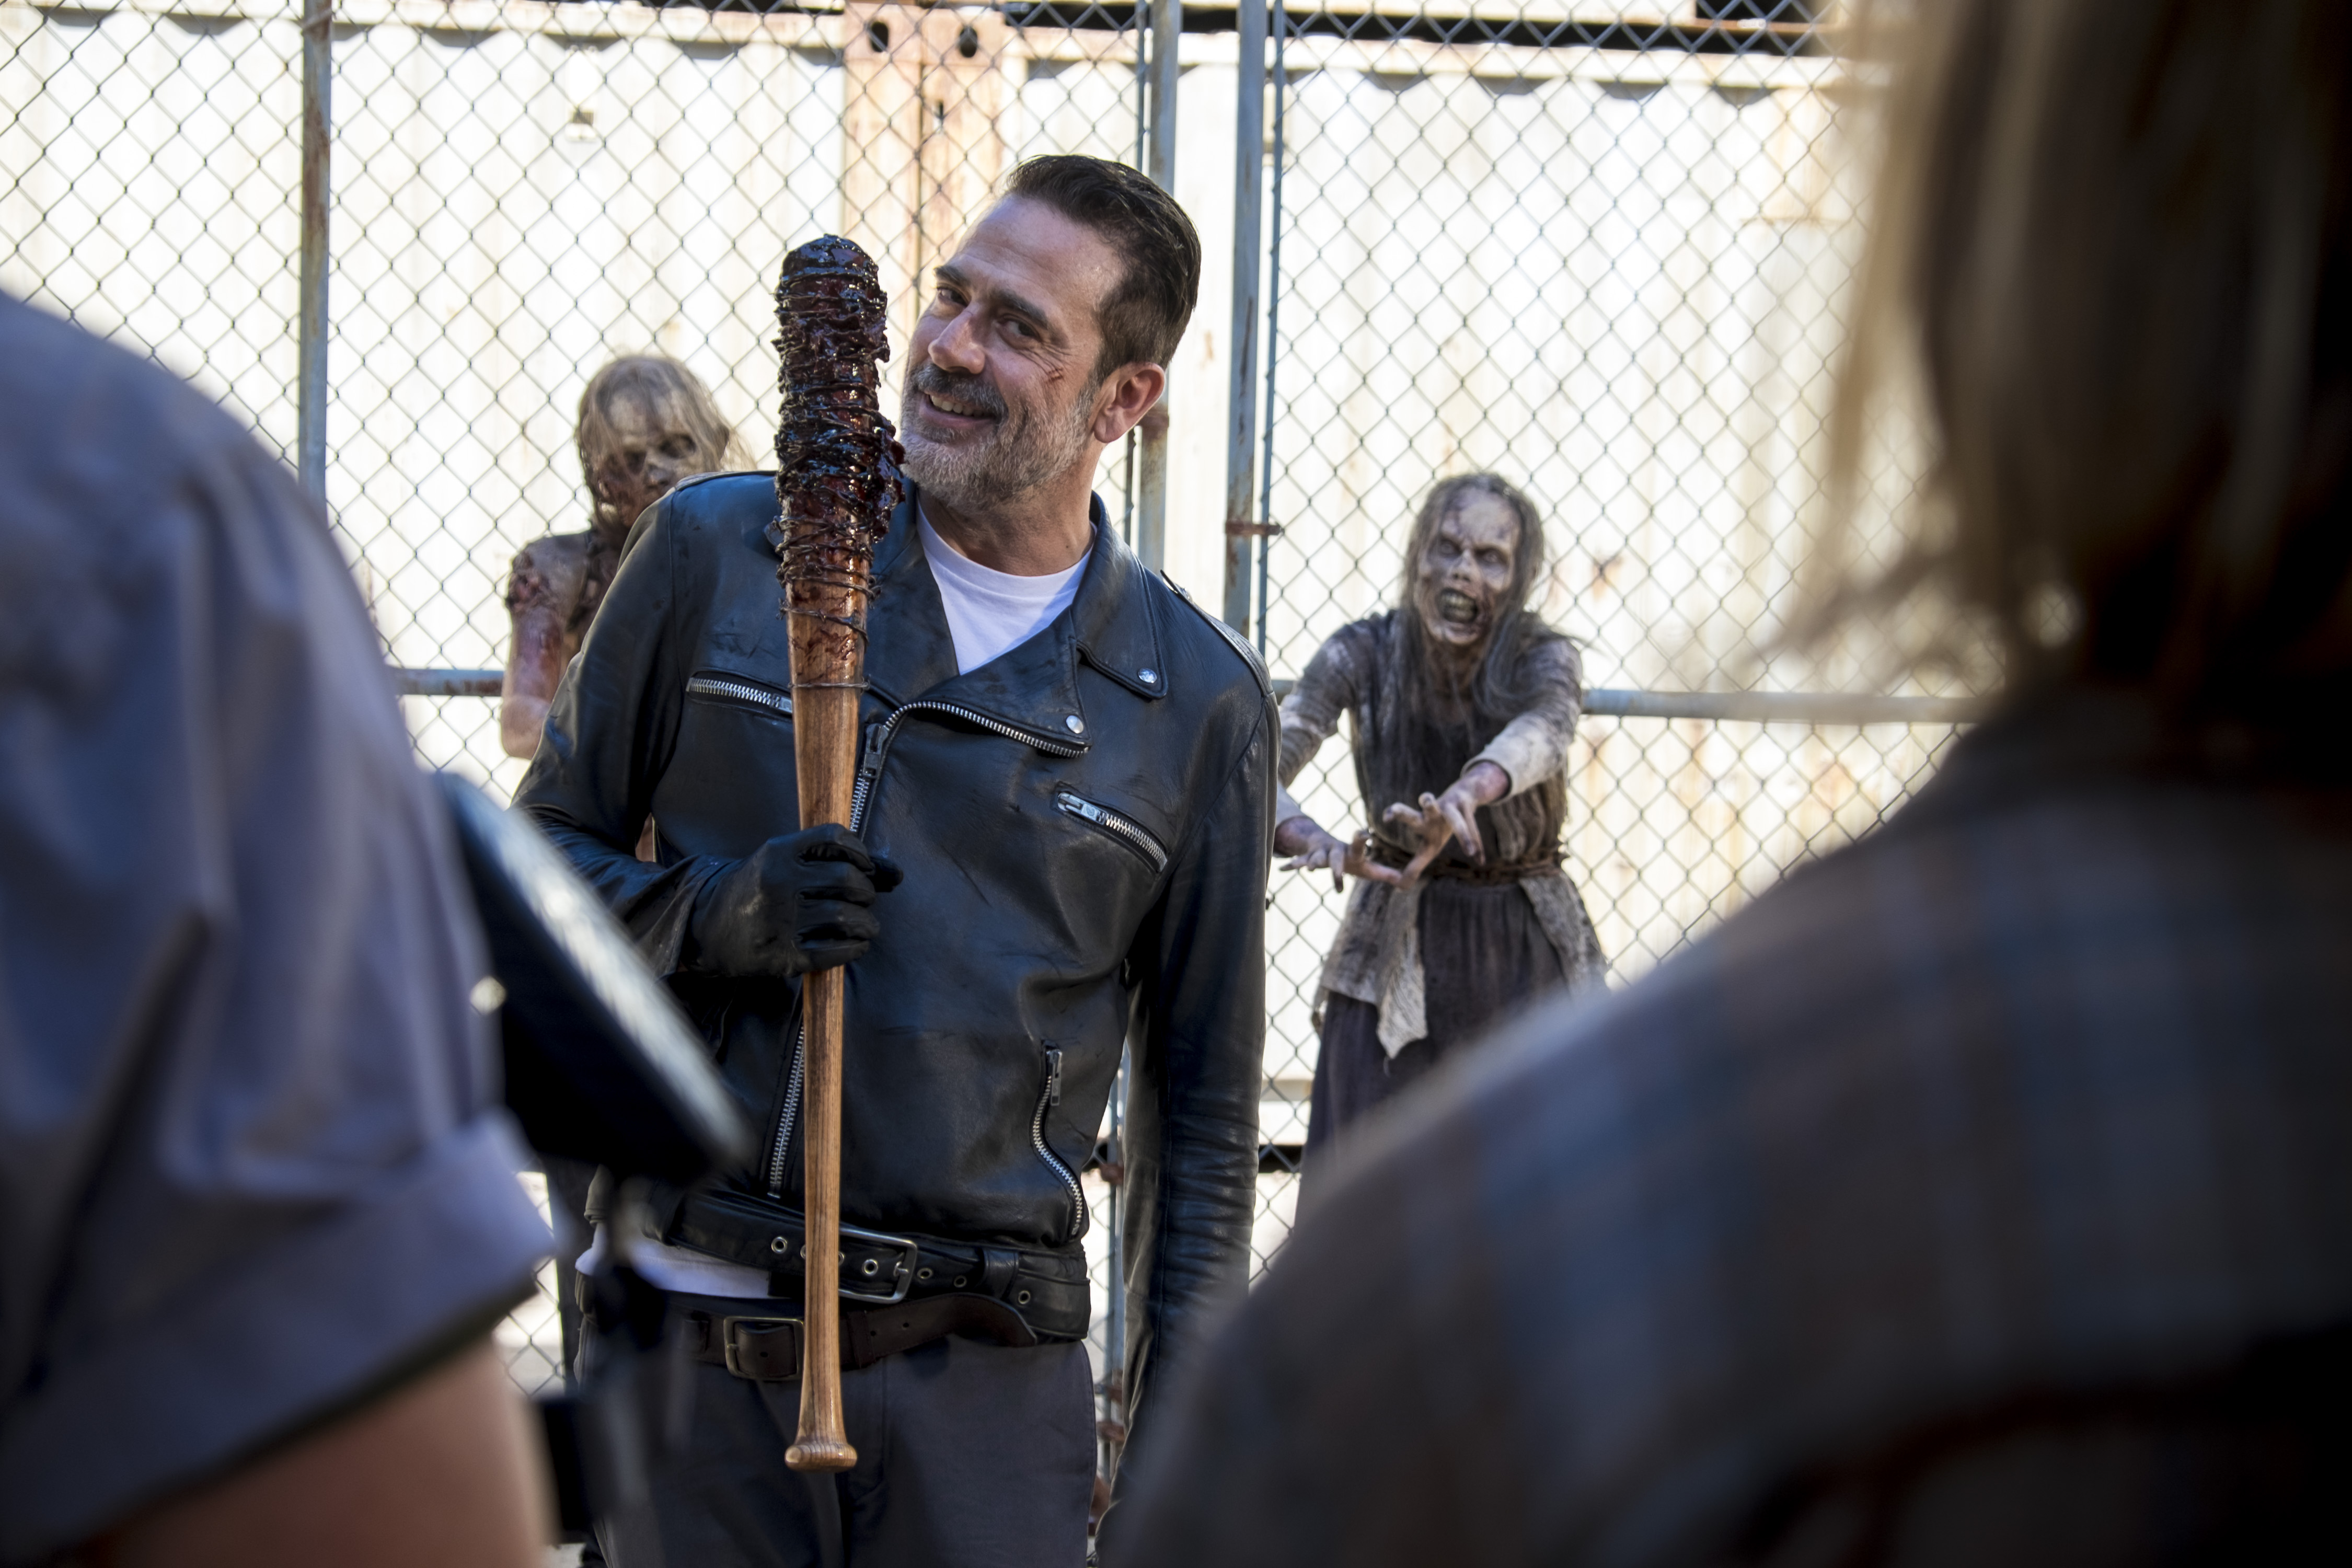 Negan (Jeffrey Dean Morgan) a-t-il vu juste dans les tentatives de Rick (absent sur la photo) d'unifier les colonies? - The Walking Dead Saison 8 Épisode 11 - Crédit photo: Gene Page/AMC